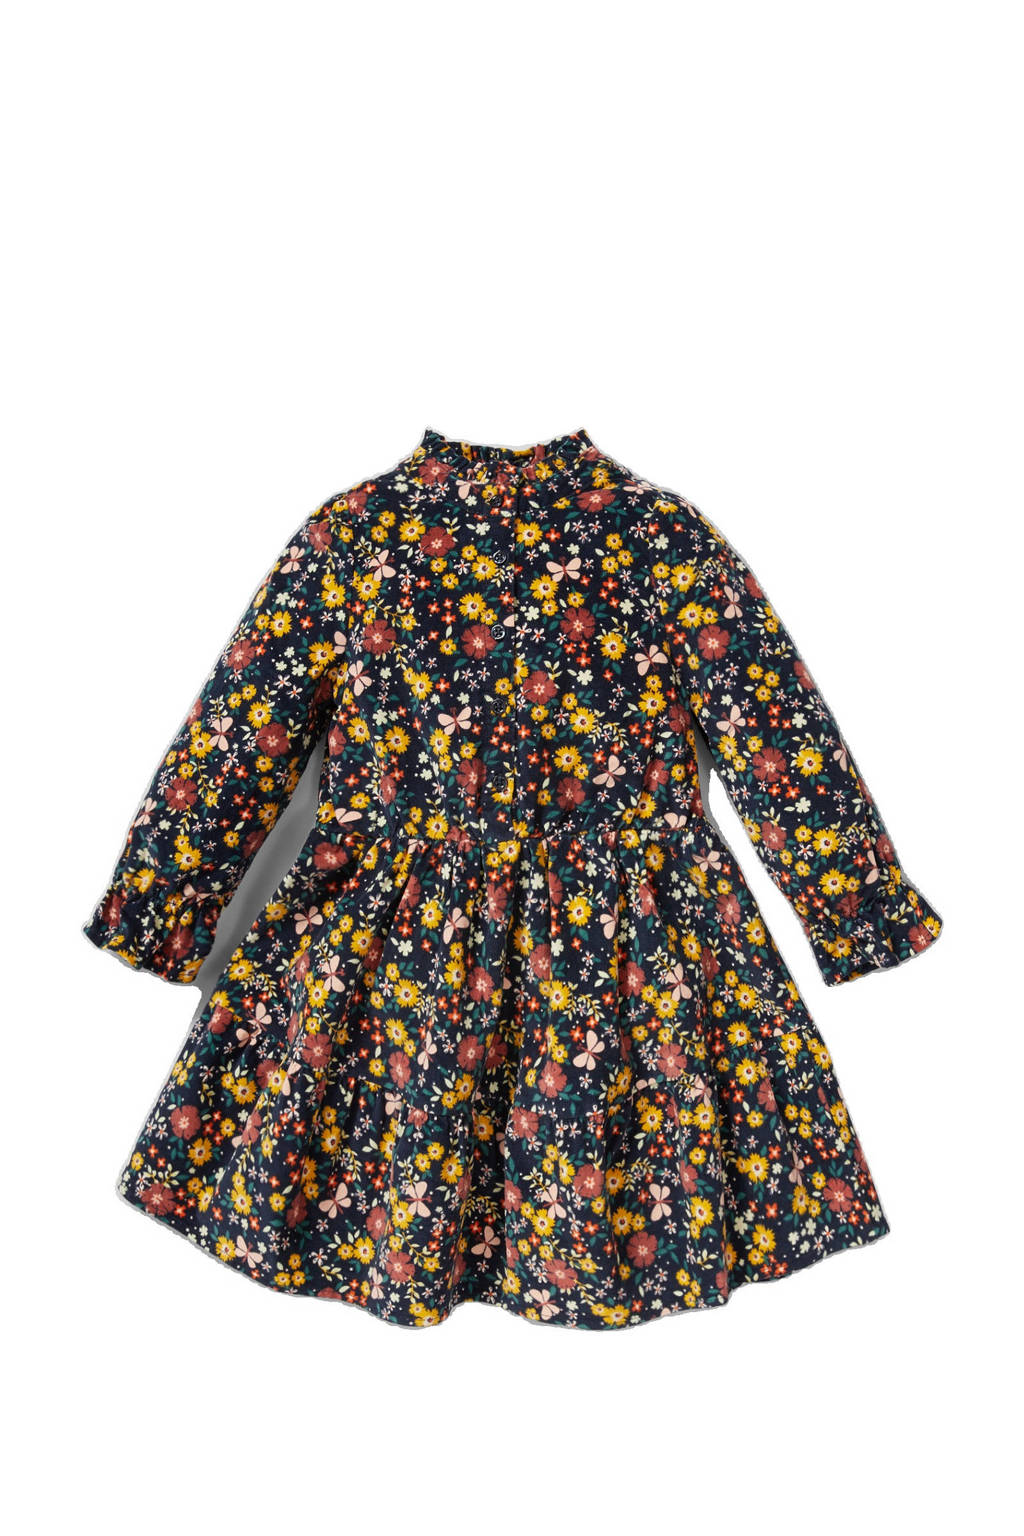 C&A jurk met all over print en ruches donkerblauw, Donkerblauw